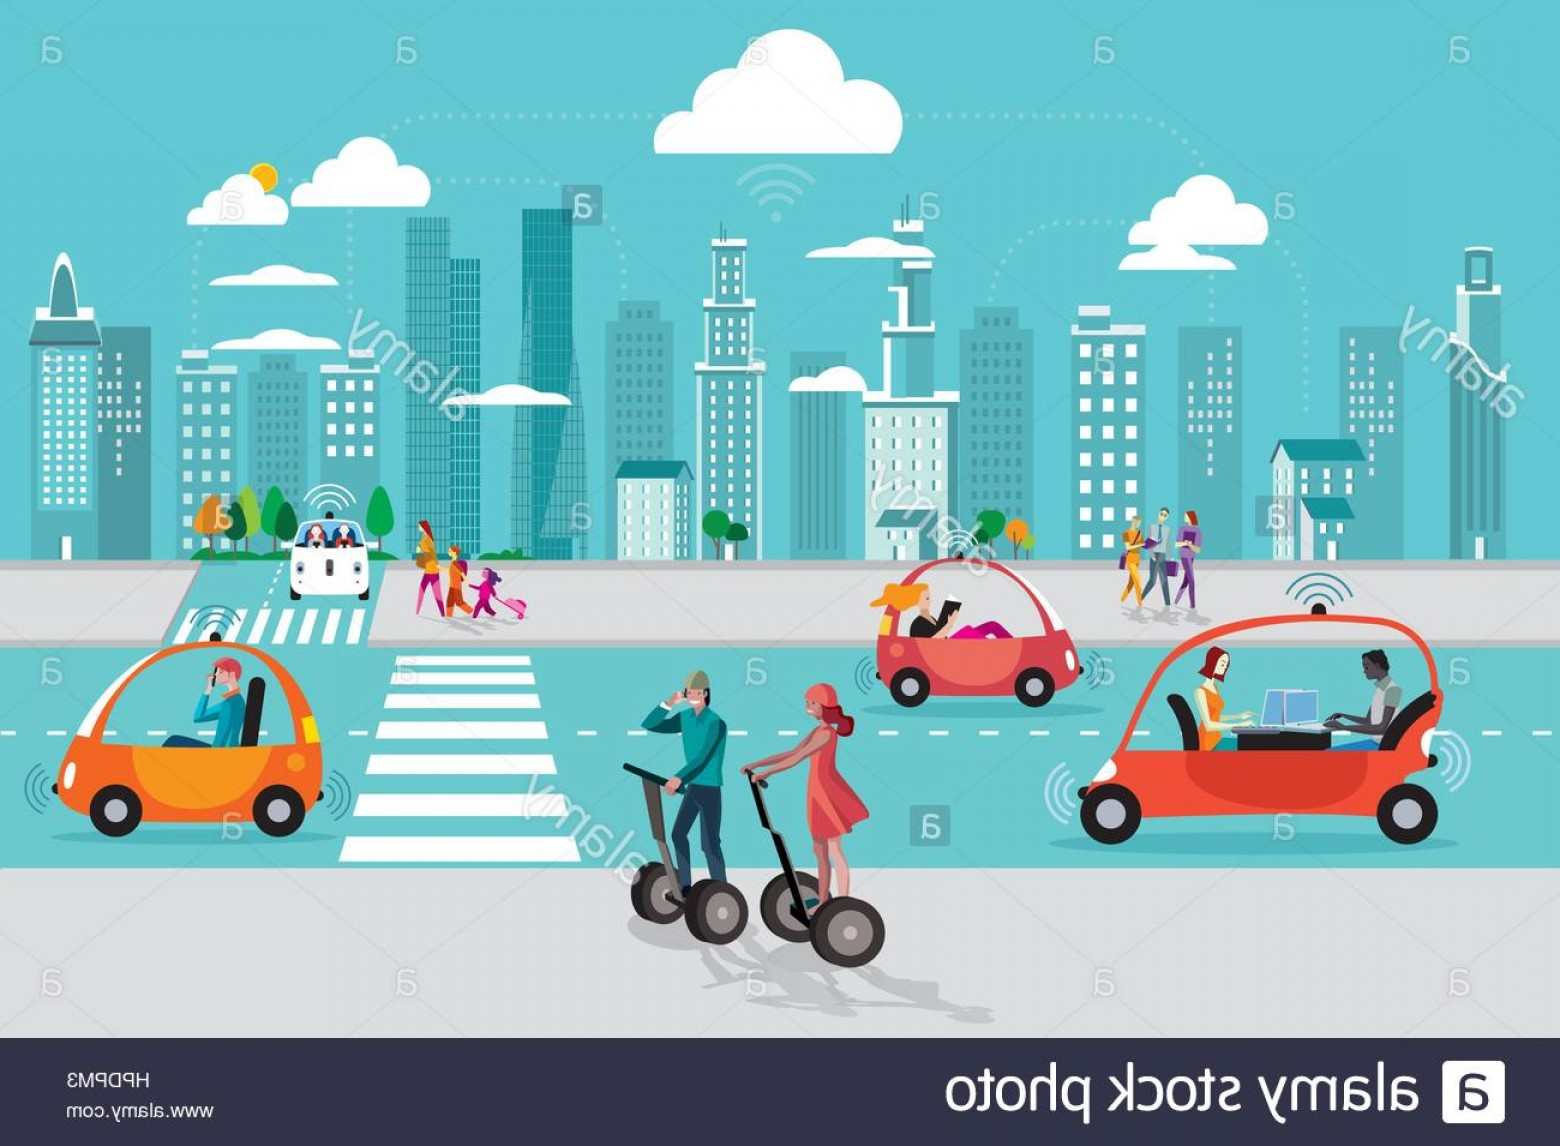 Vector Images Of Cars On Streets: Stock Photo Road In The City With Autonomous Driverless Cars And People Walking